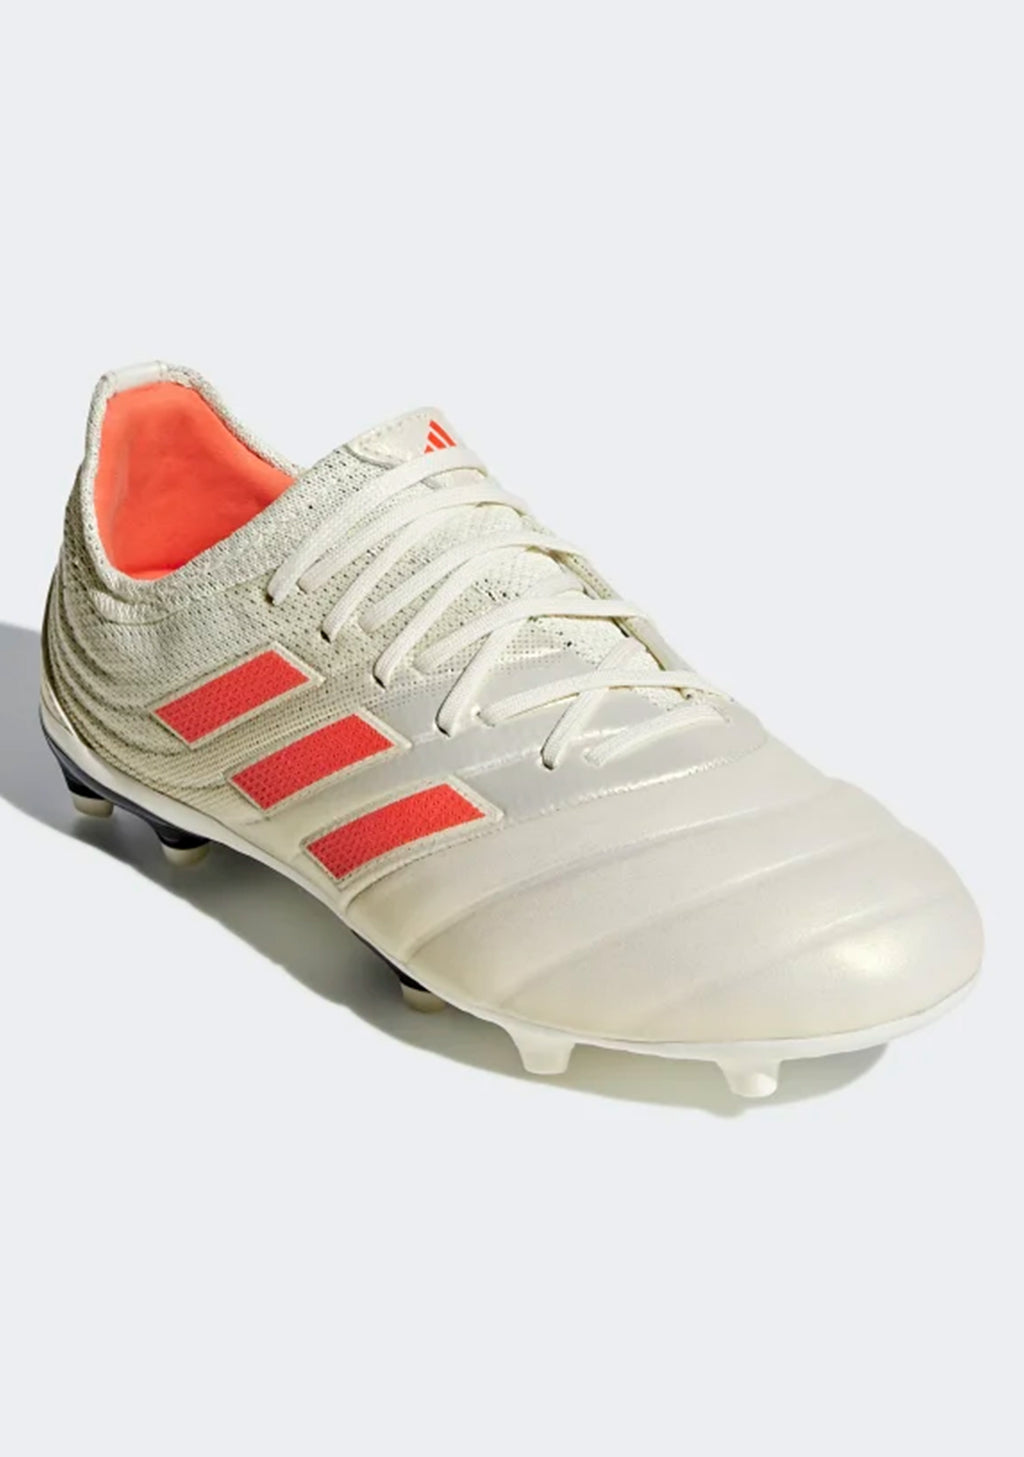 ADIDAS JUNIOR COPA 19.1 FIRM GROUND BOOTS <BR> D98091